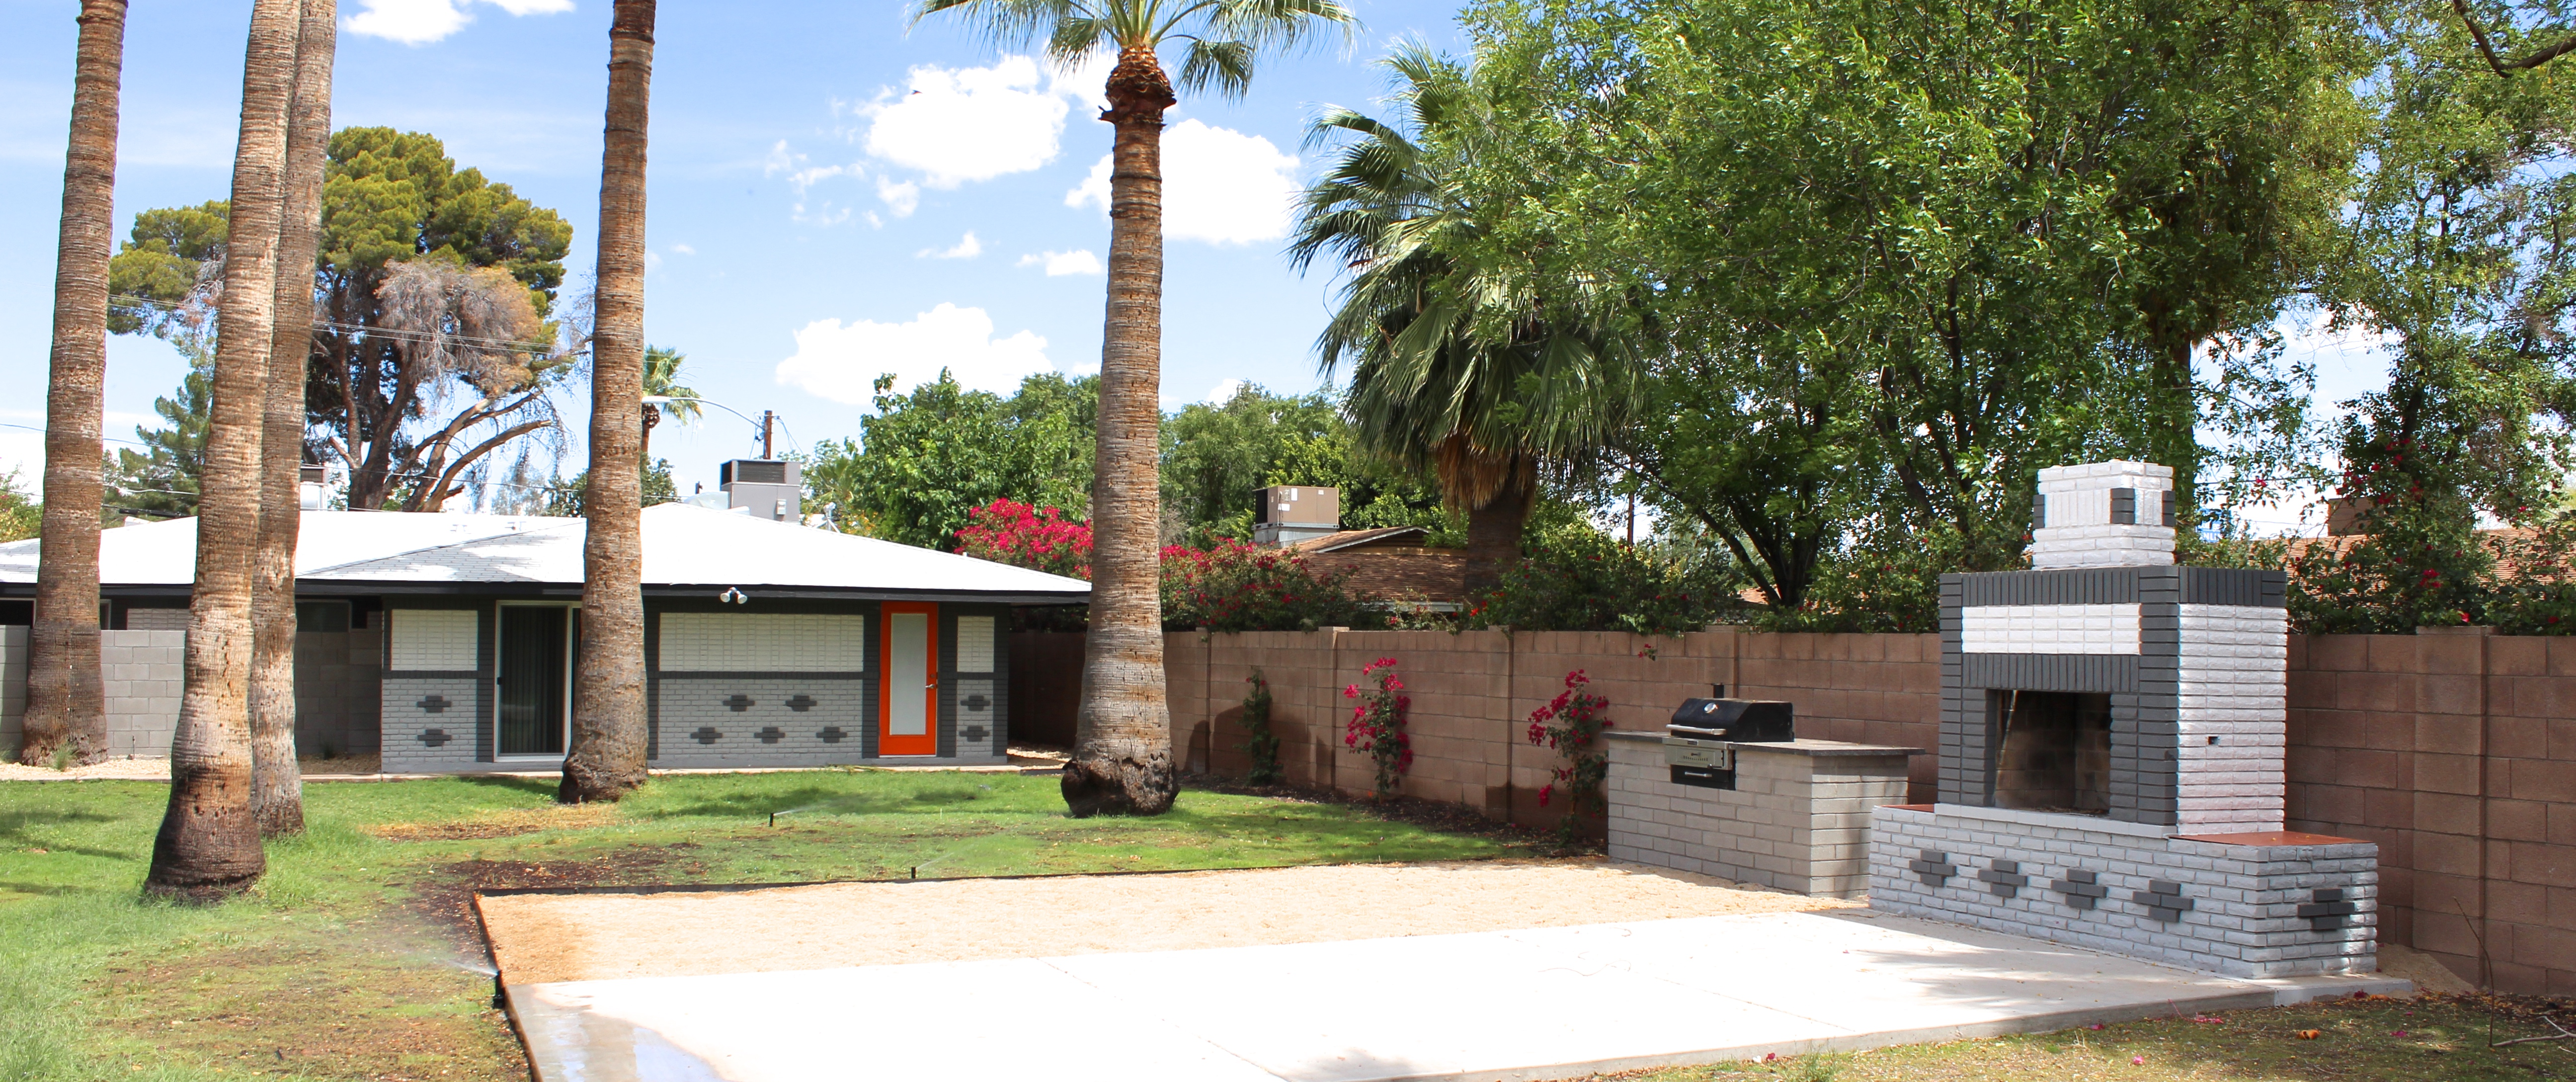 4140 N 10th St, Phoenix, AZ 85014 | Midtown Phoenix Apartments For Rent